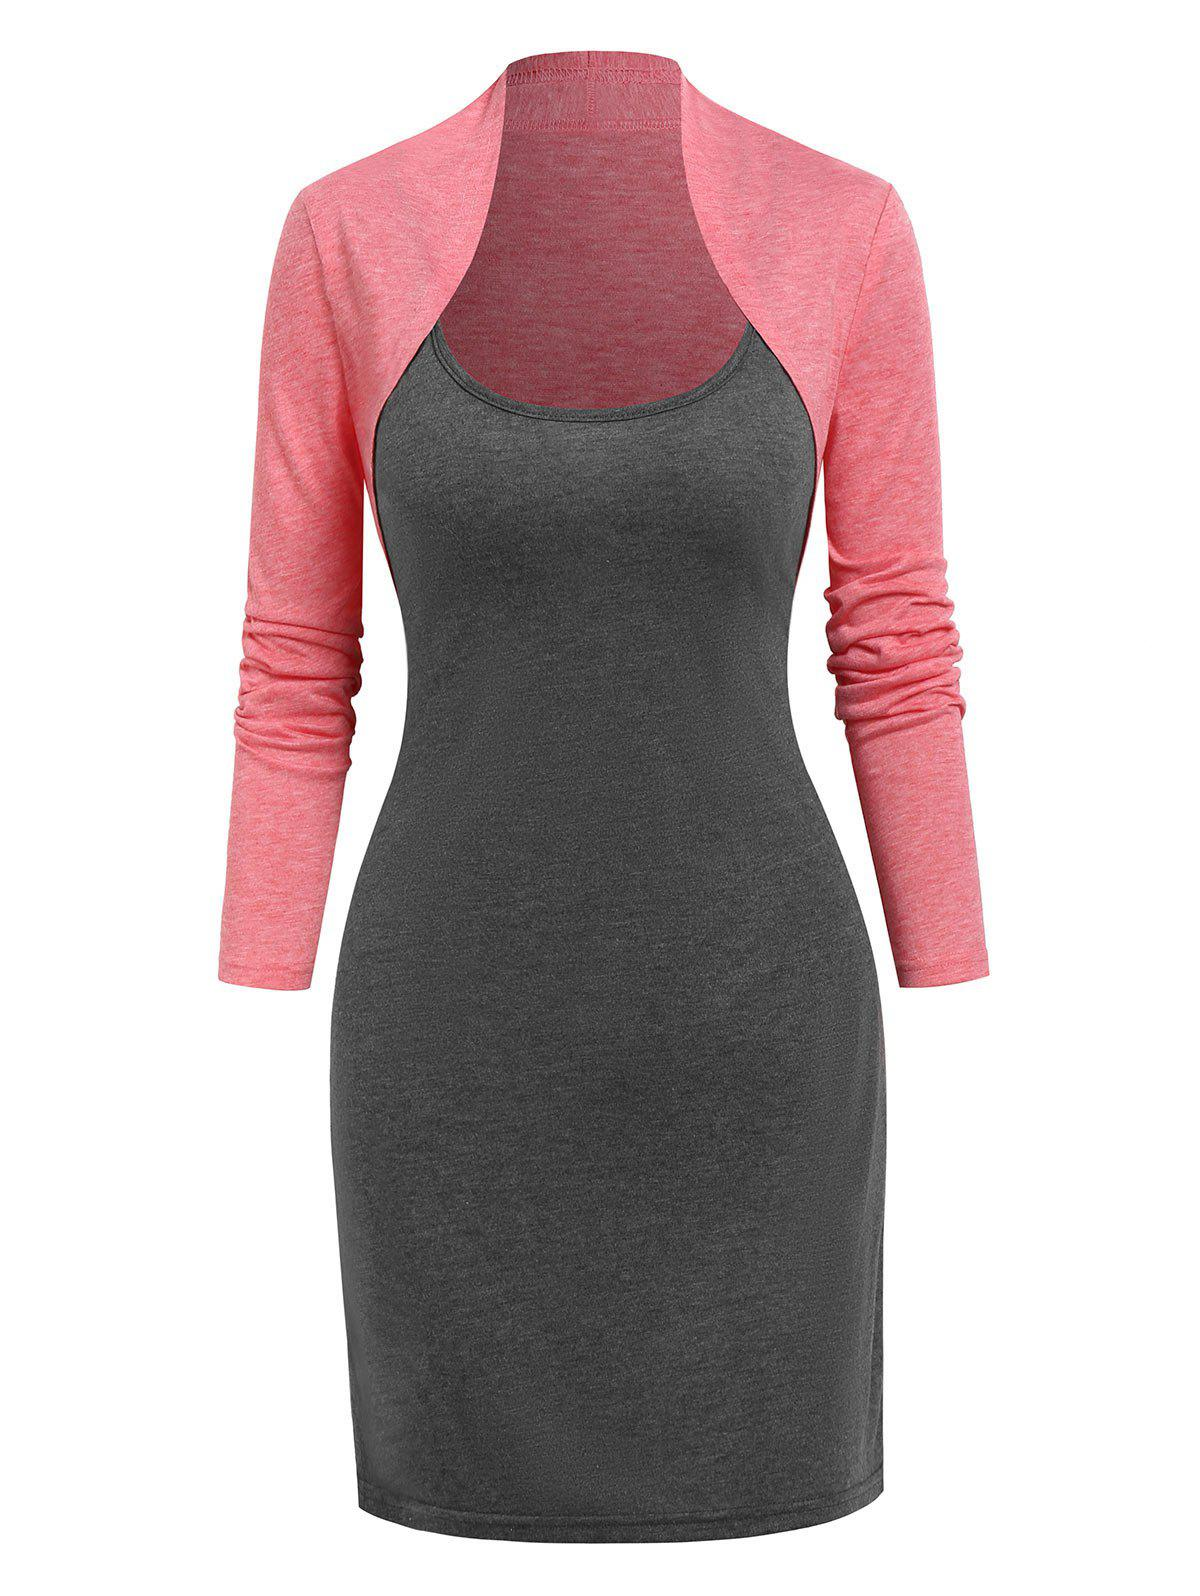 Fancy Casual Cami Dress and Heathered Cropped Cardigan